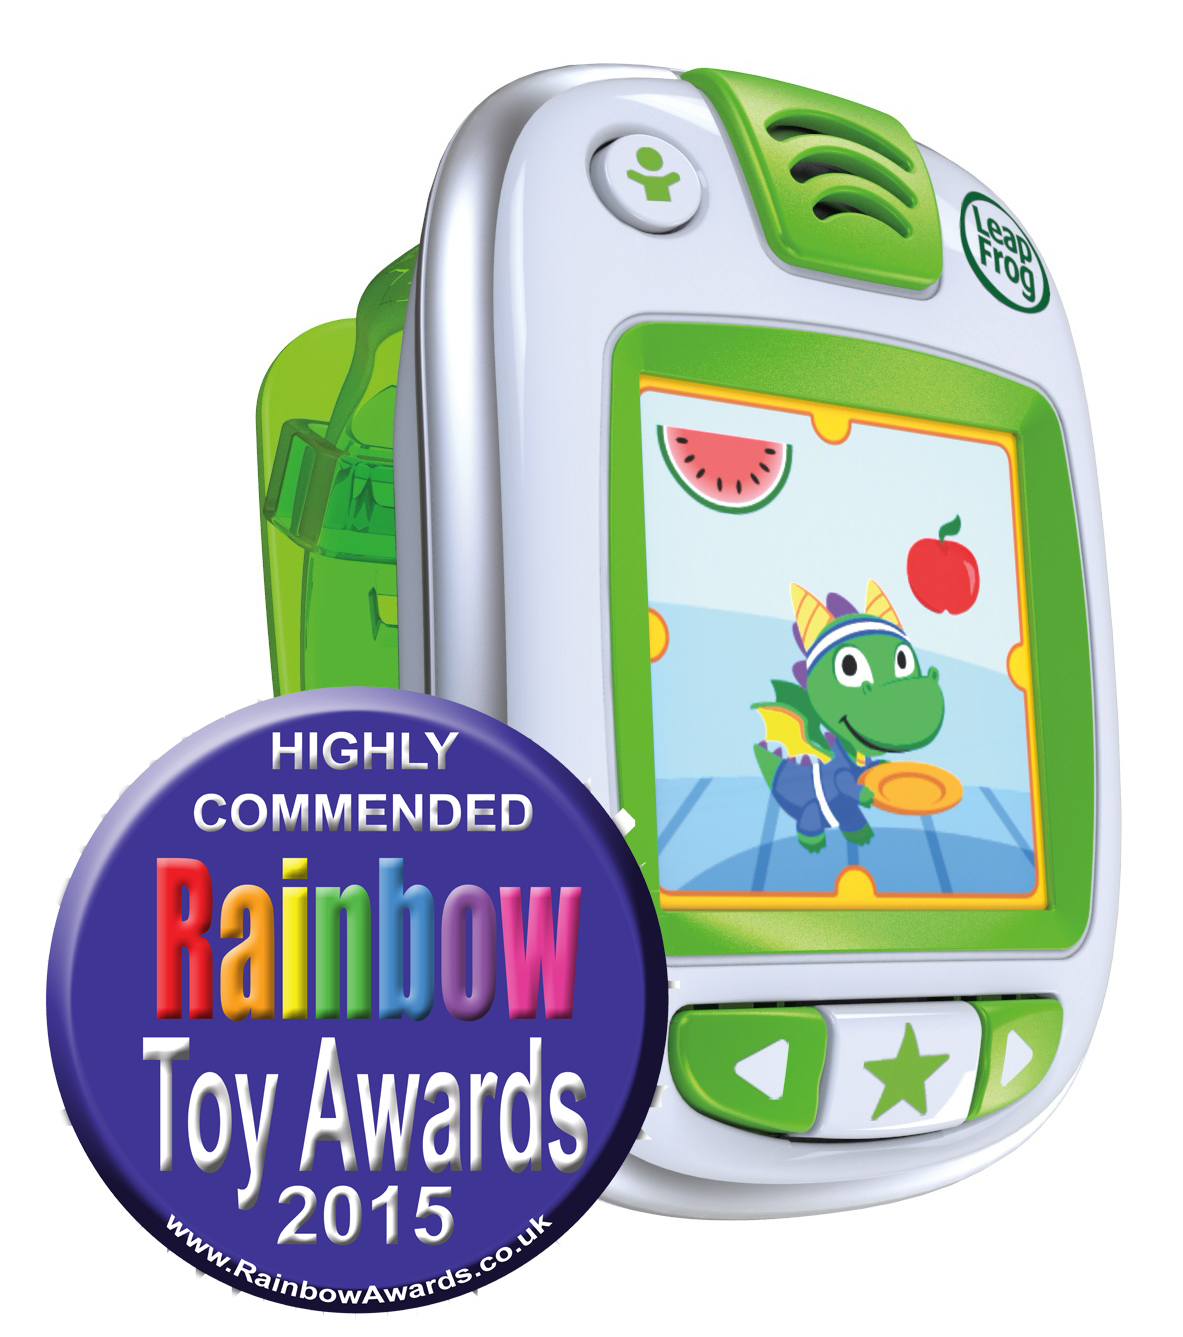 Splendid Archives For October   Rainbow Toy Awards  The Awards For  With Fascinating Hc Leapband Outdoor With Amazing Childrens Garden Tools Set Also Dog Friendly Gardens In Addition Brooklyn Botanical Gardens And Garden Summer House Uk As Well As Garden Leave Clause Additionally Childrens Gardening Tools From Rainbowawardscouk With   Fascinating Archives For October   Rainbow Toy Awards  The Awards For  With Amazing Hc Leapband Outdoor And Splendid Childrens Garden Tools Set Also Dog Friendly Gardens In Addition Brooklyn Botanical Gardens From Rainbowawardscouk